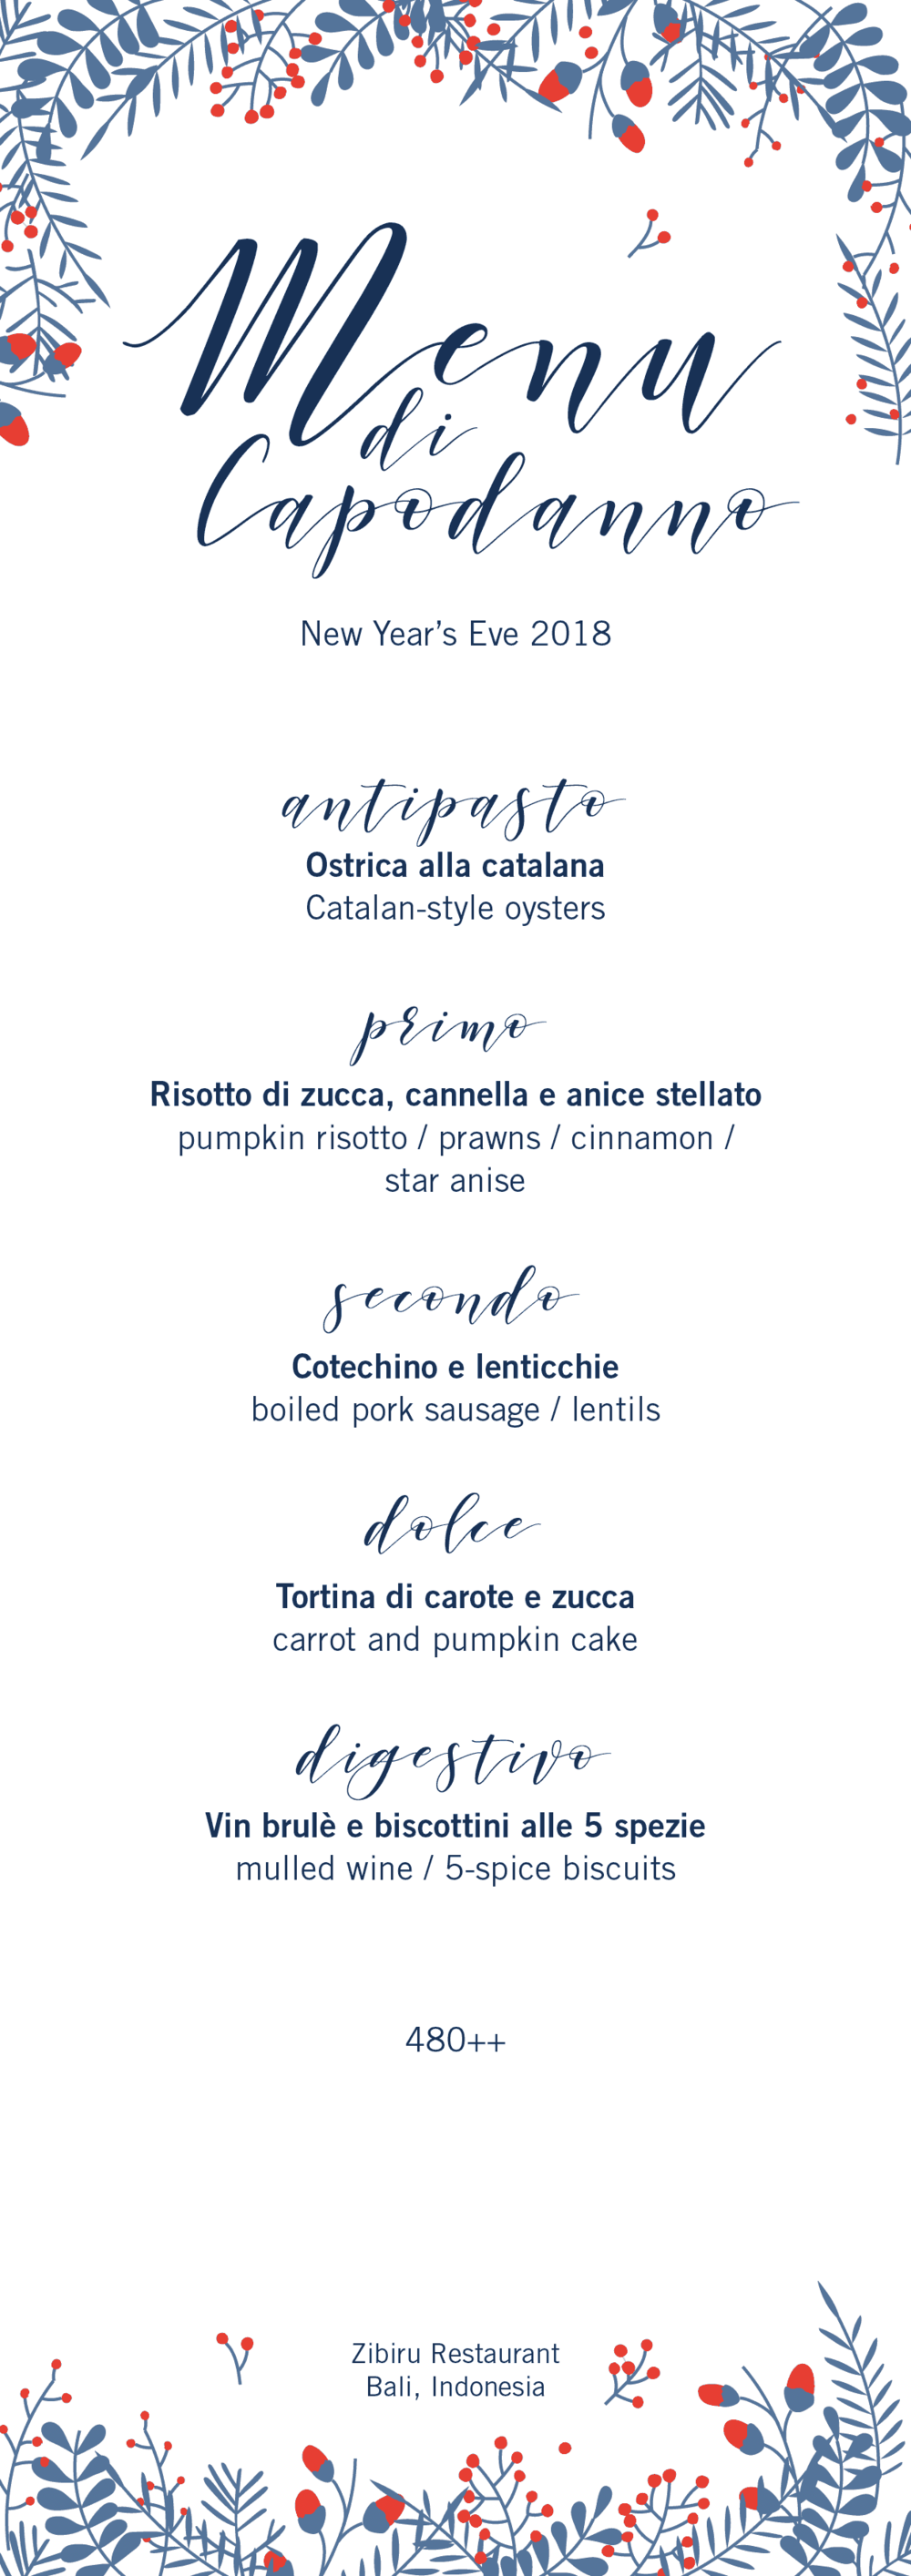 zibiru-italian-restaurant-festa-di-capodanno-new-years-dinner-menu-2018